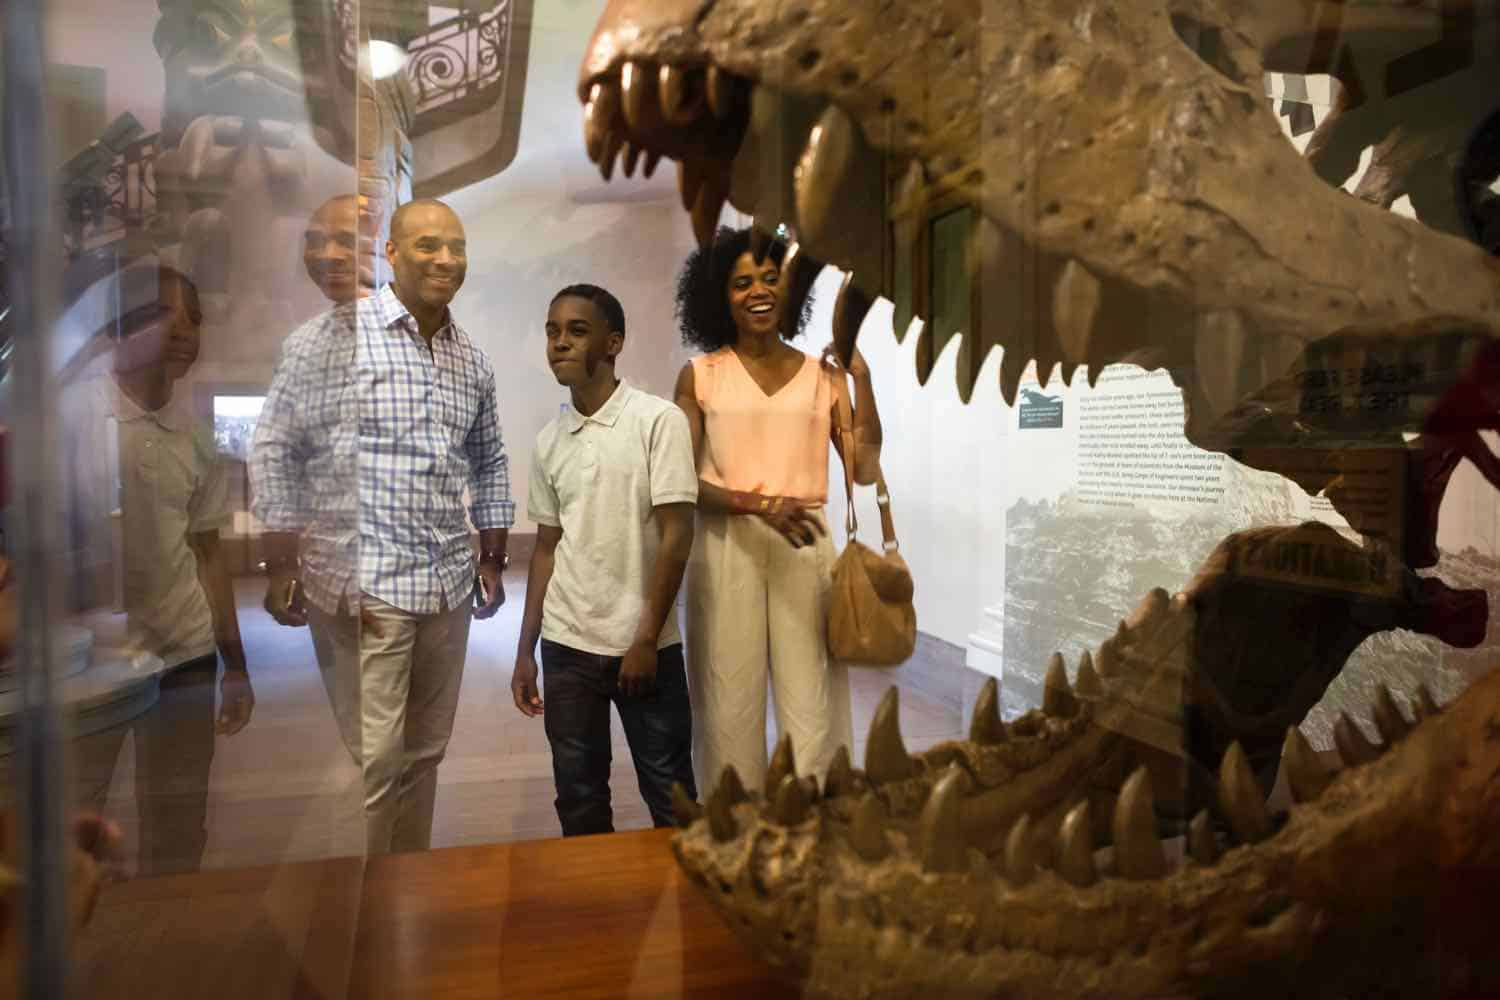 Family visiting a museum